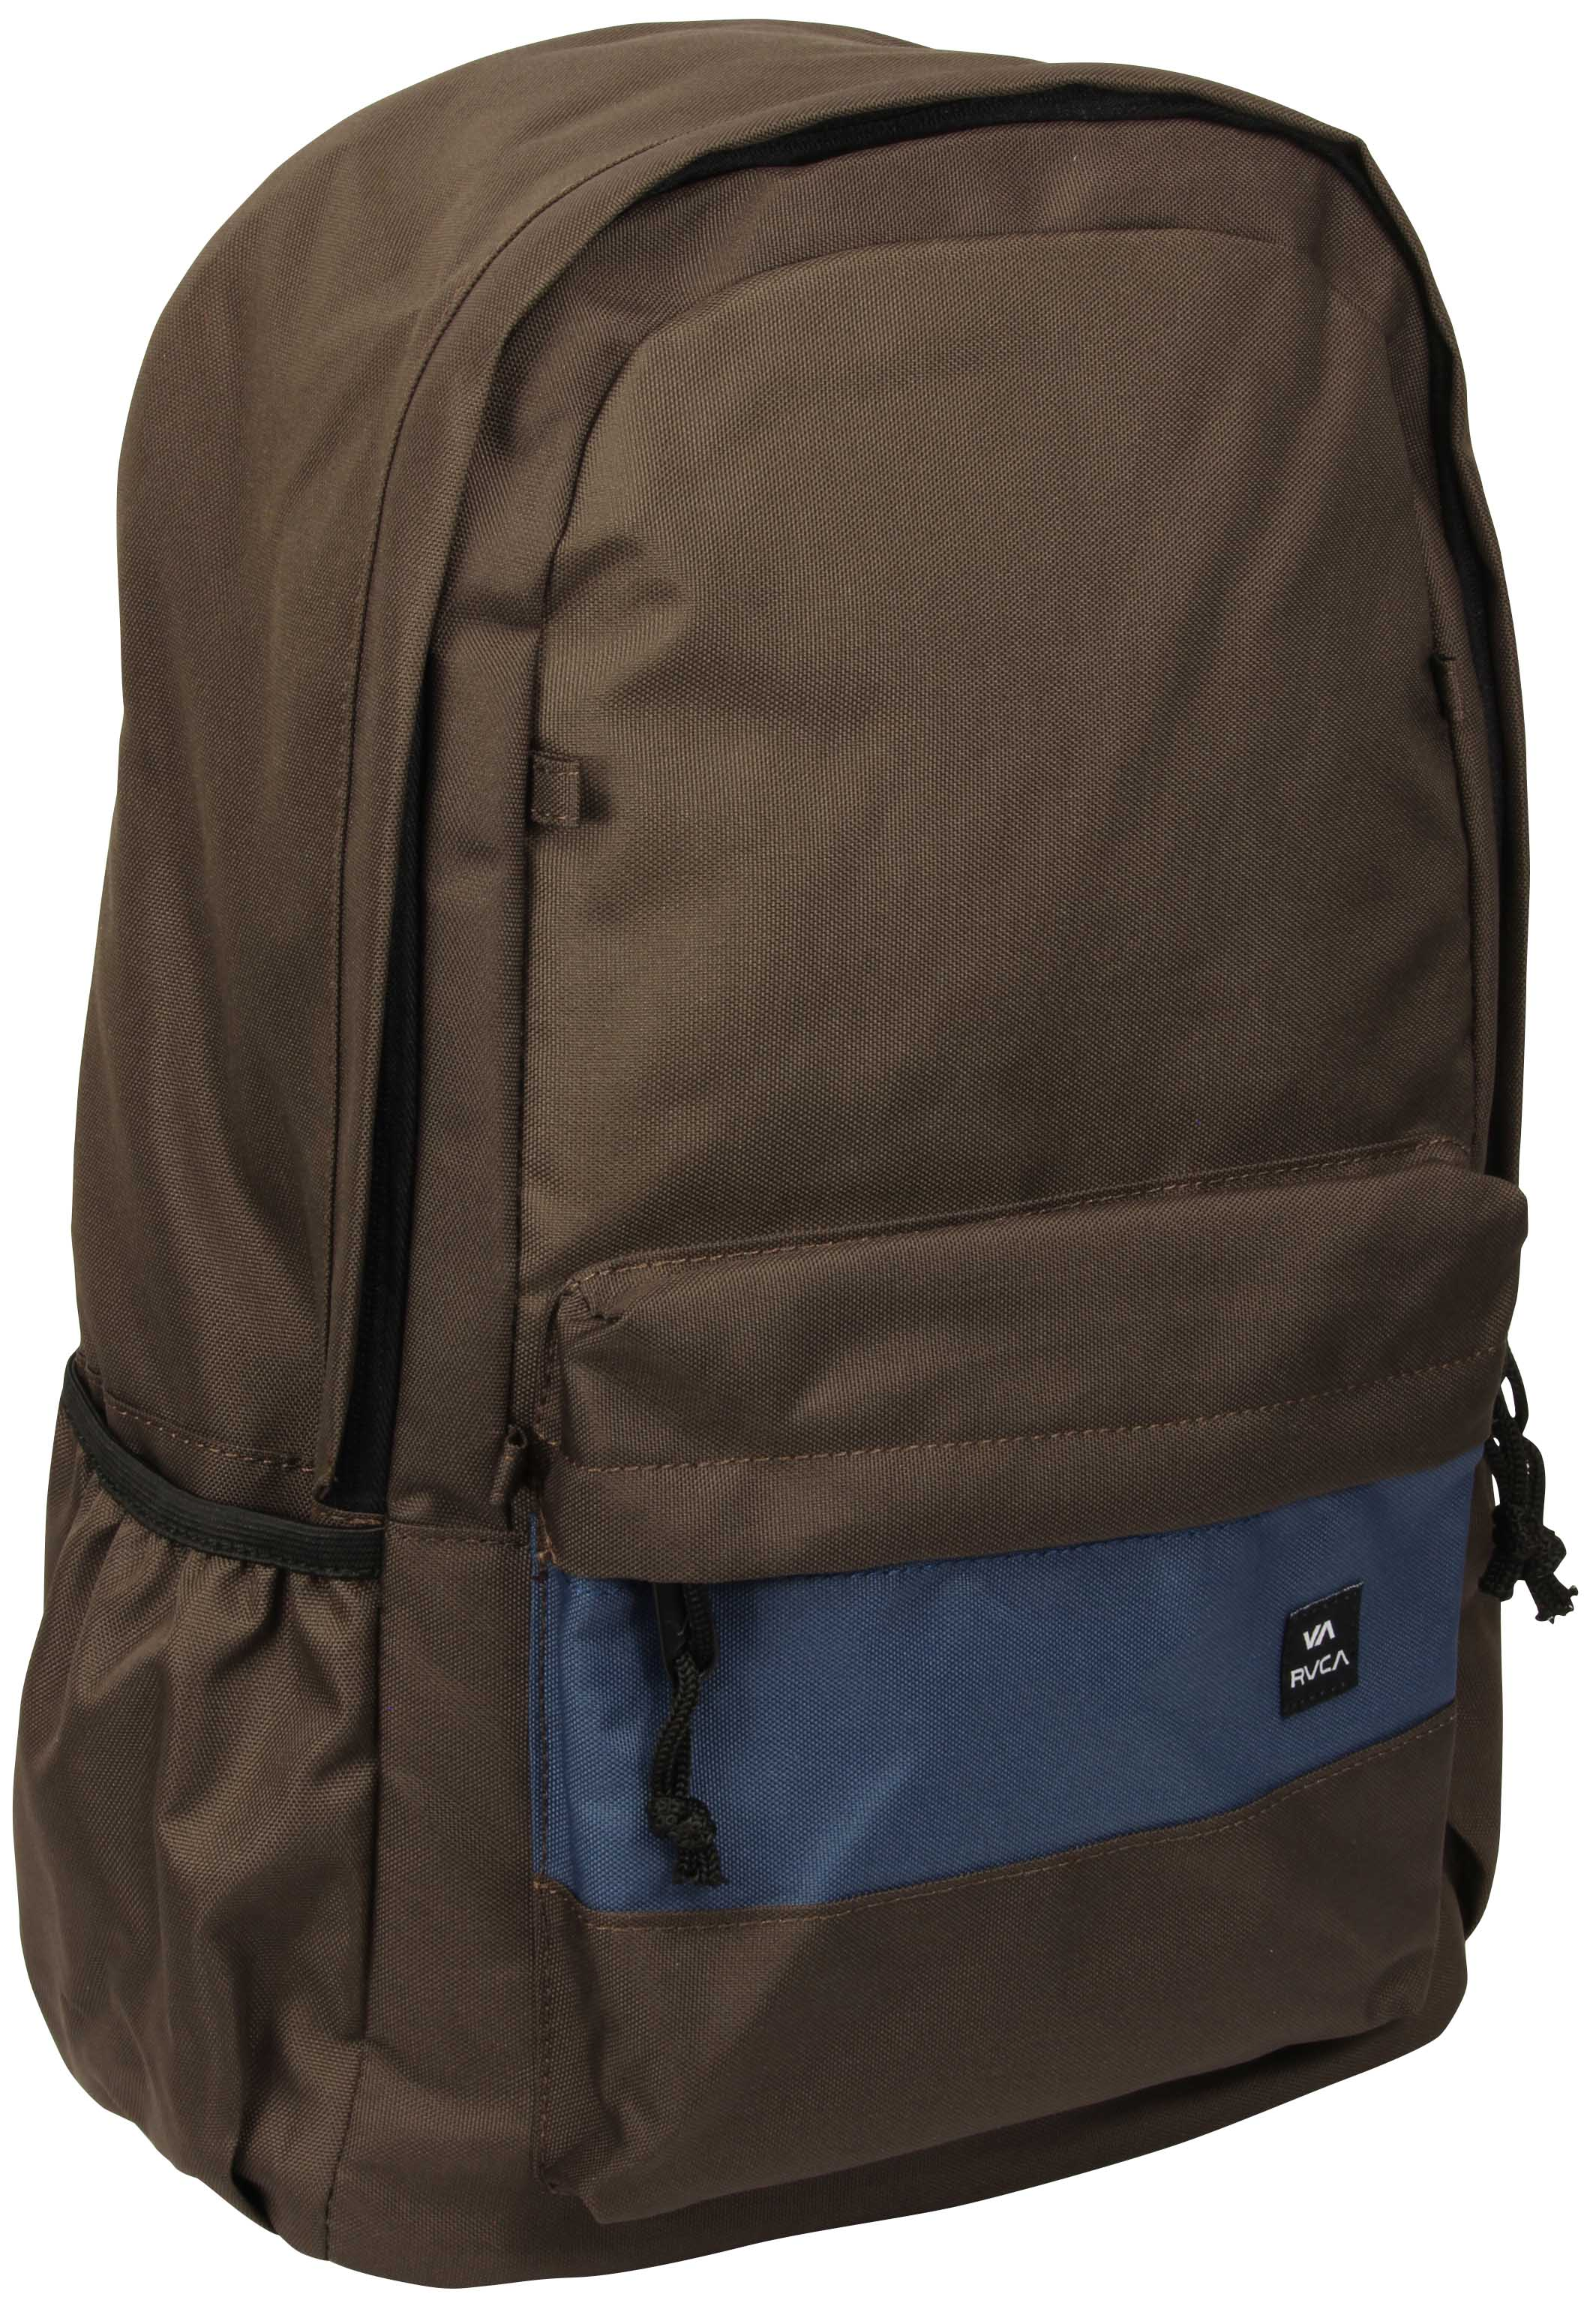 Details about RVCA Mens Unisex Frontside Medium All Purpose Backpack - Dark  Brown 7ab3e9ecc9aa5